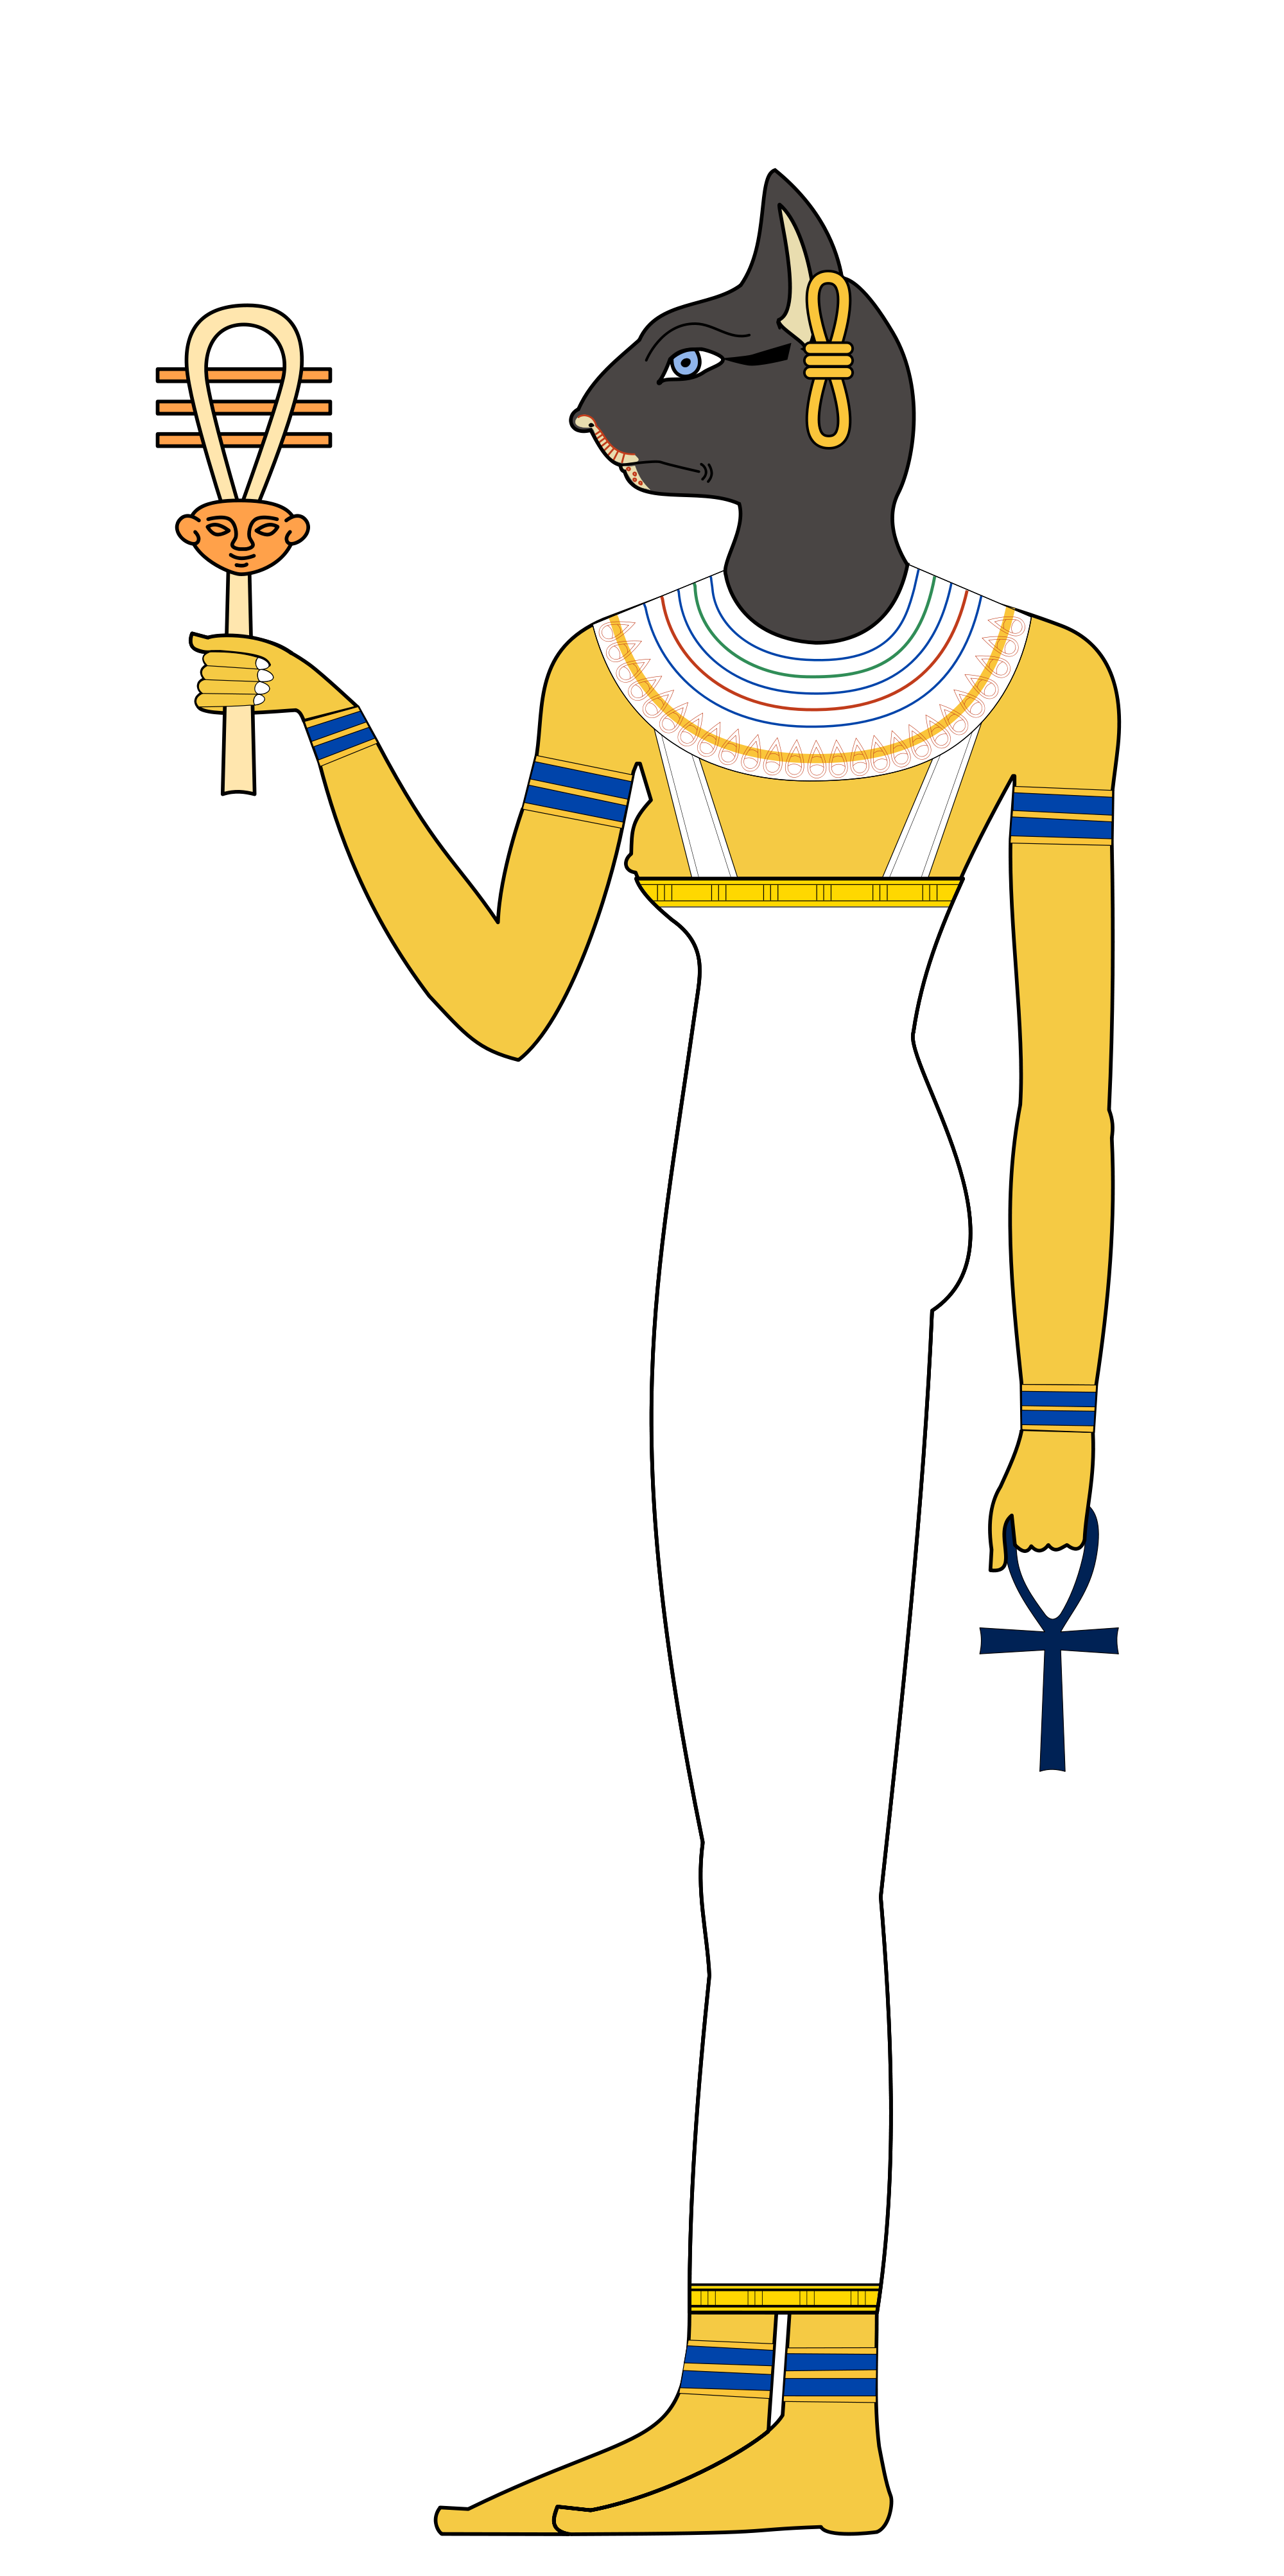 Bastet drawing cartoon